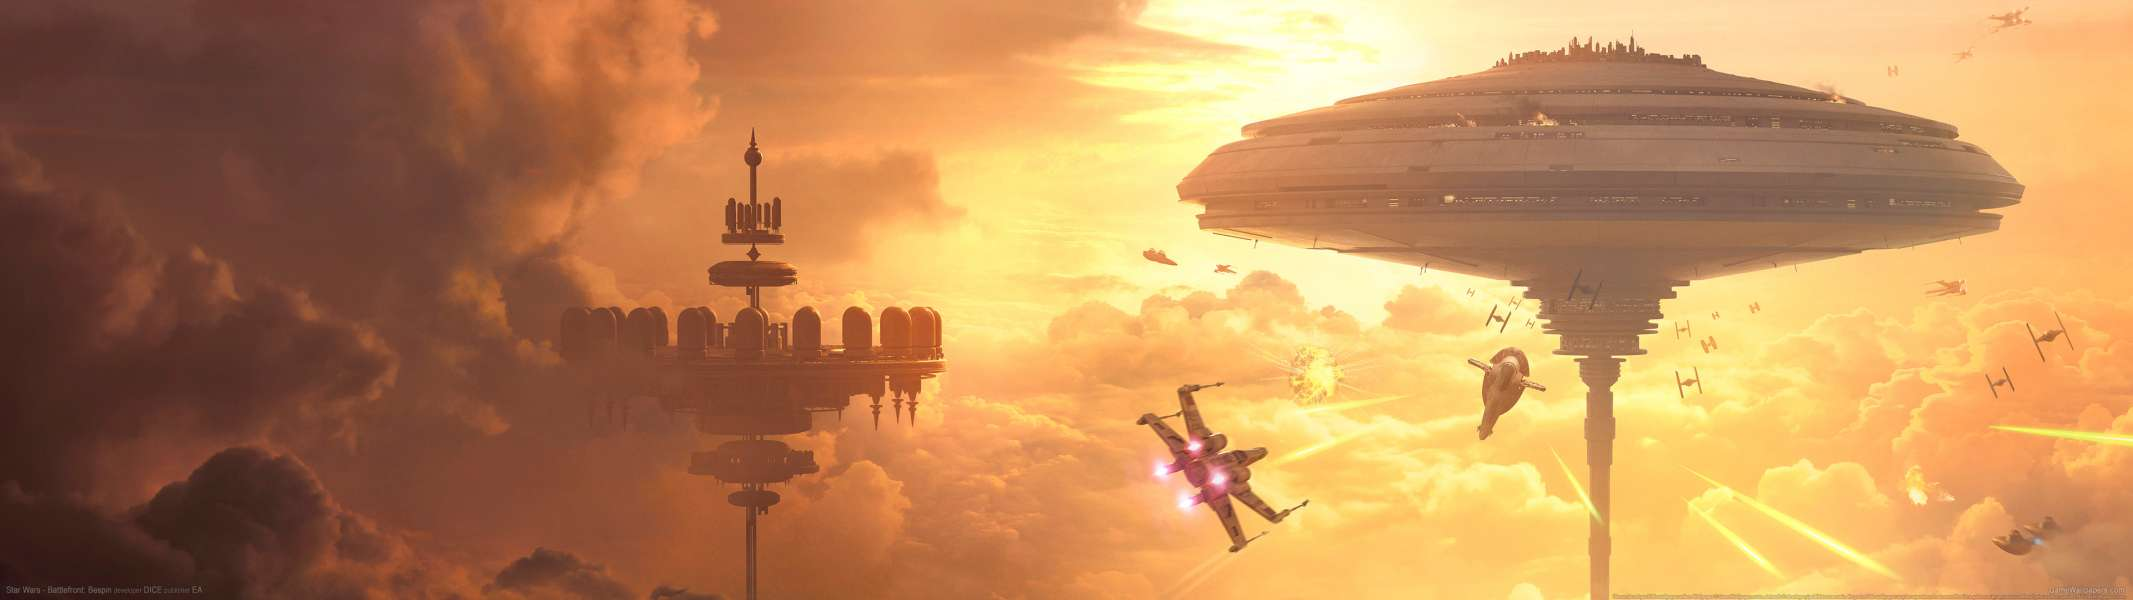 Star Wars - Battlefront: Bespin dual screen achtergrond